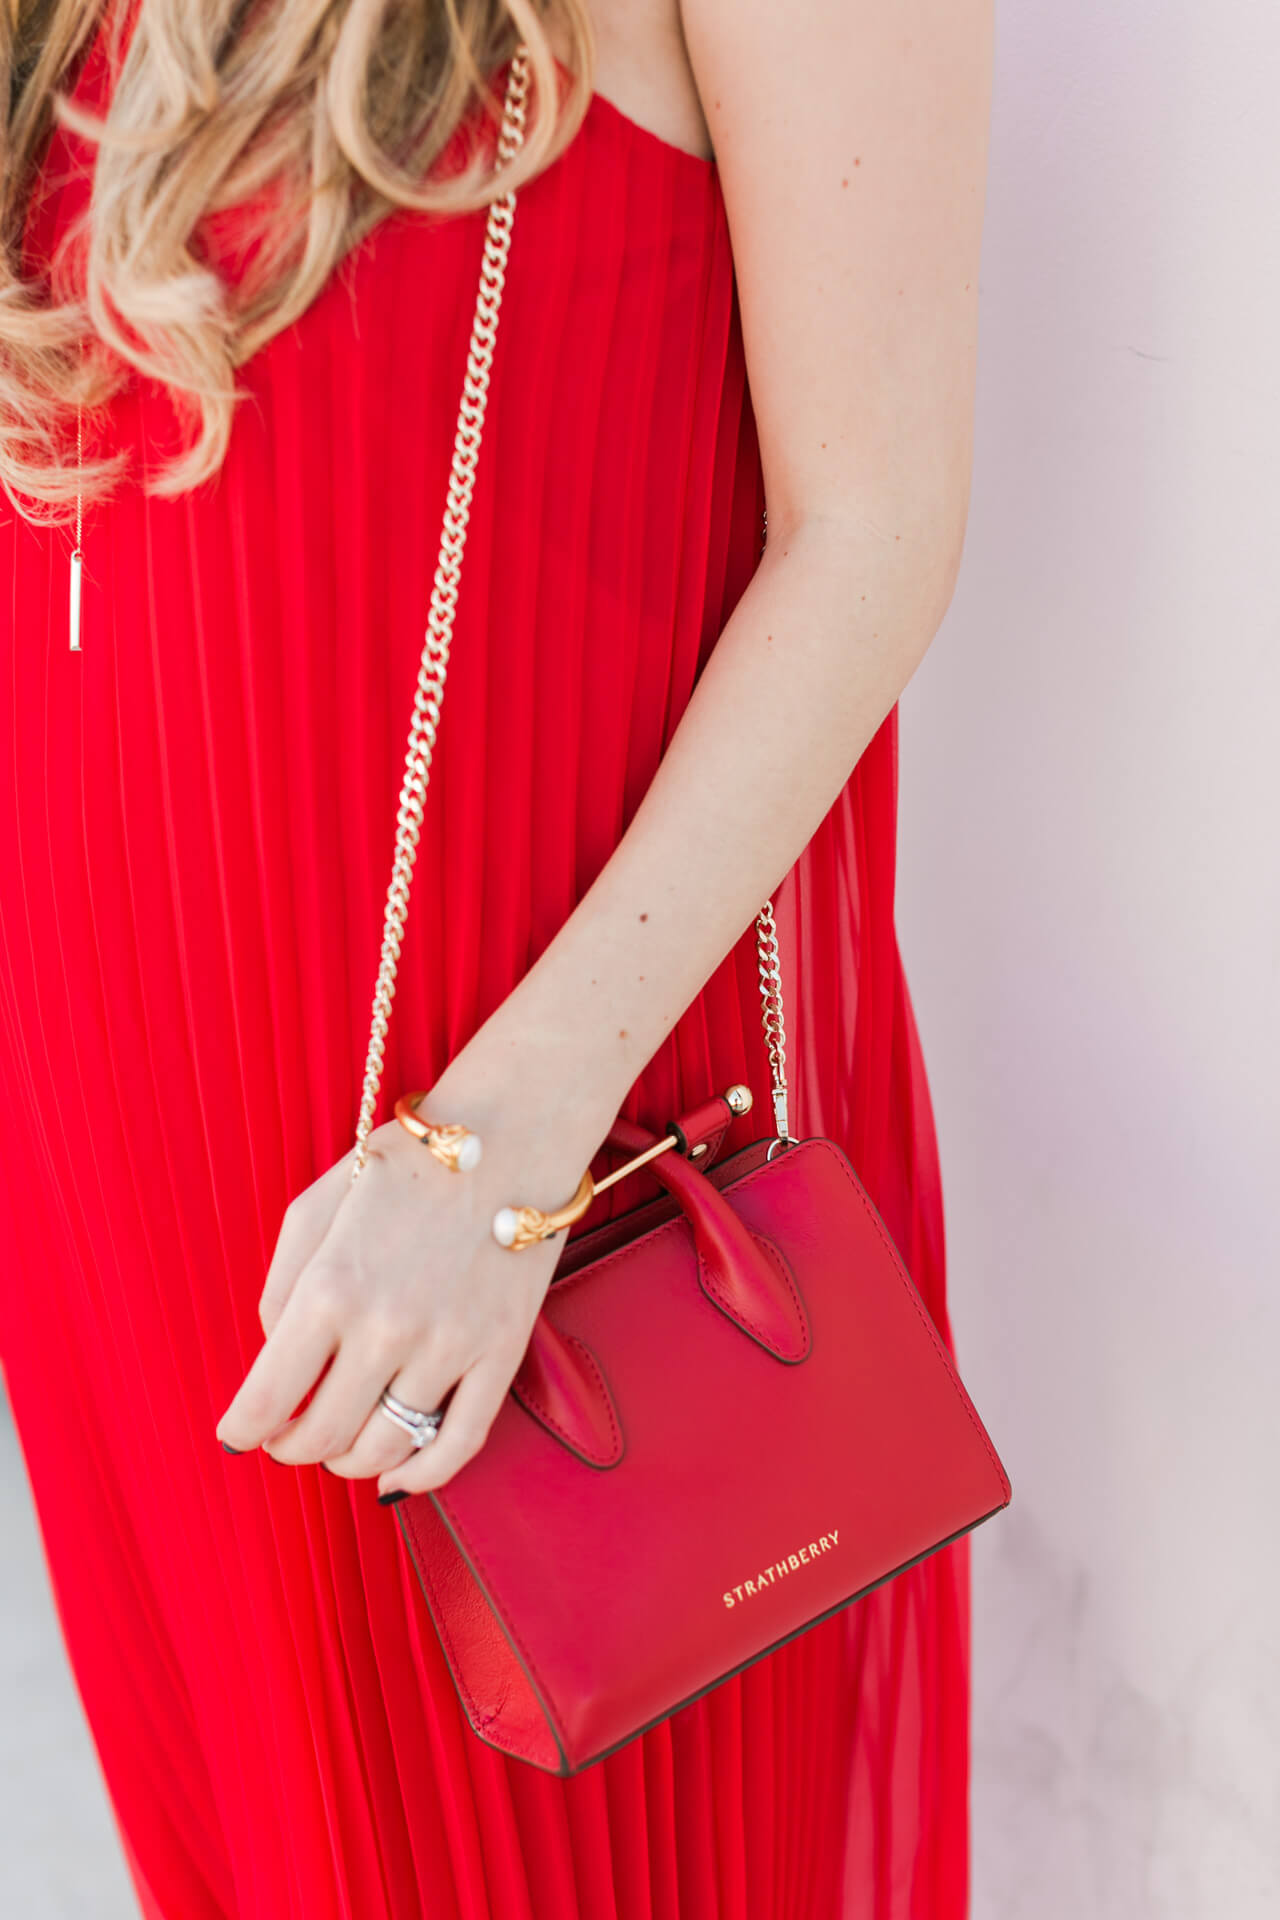 this red bag with chain strap is so pretty for fall and winter!